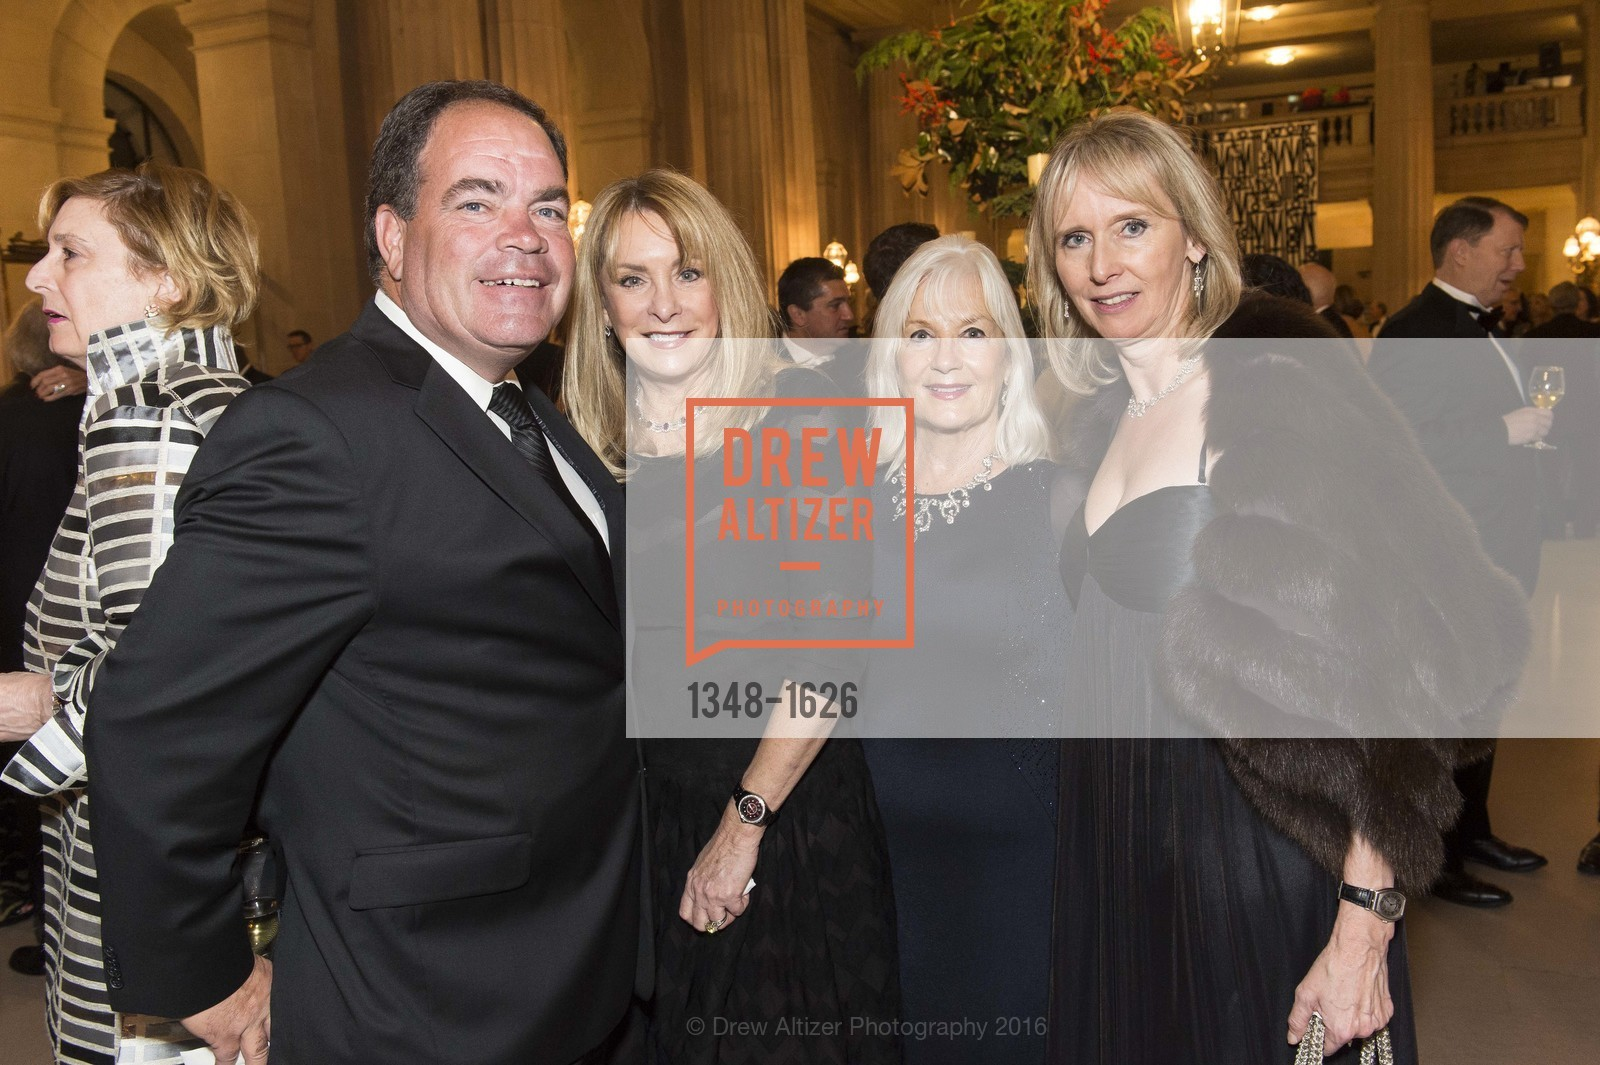 John Viszlay, Cathy MacNaughton, Arlene Inch, Sigrun Graeff, SF Opera's An Evening on the Stage honoring Franklin P. (